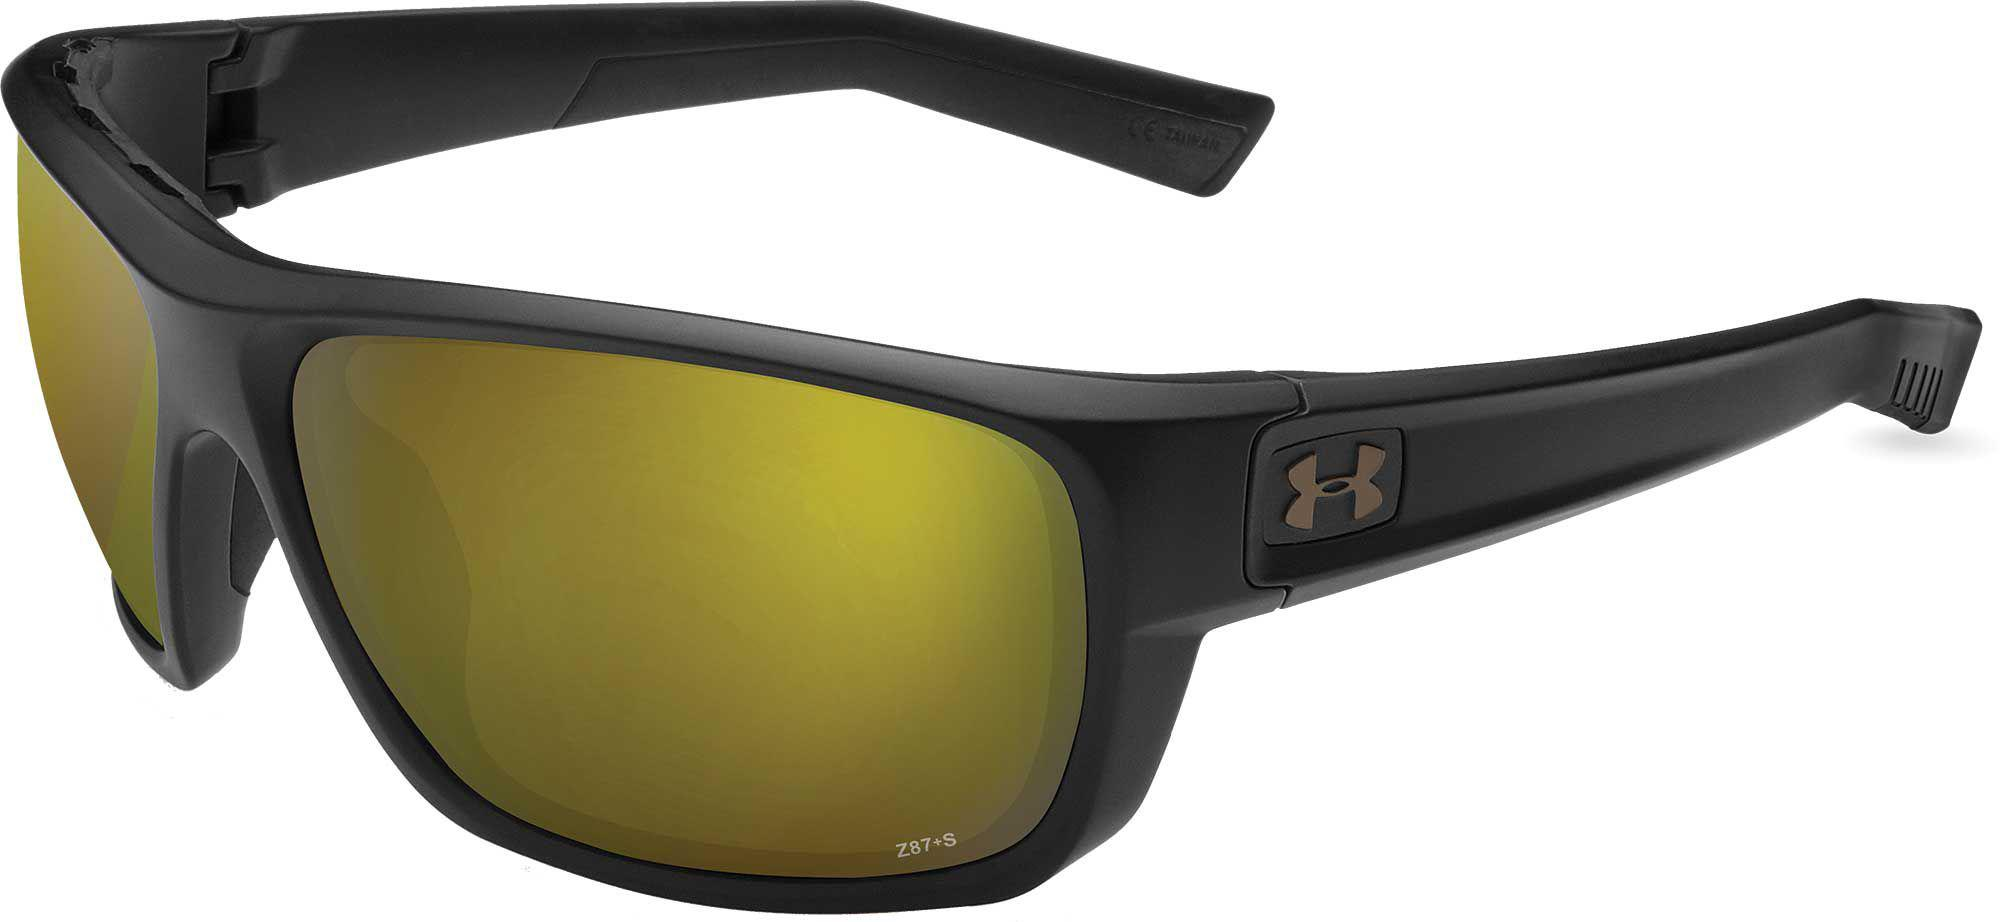 b120a23342 Under Armour - Black Launch Fishing Tuned Shoreline Polarized Sunglasses  for Men - Lyst